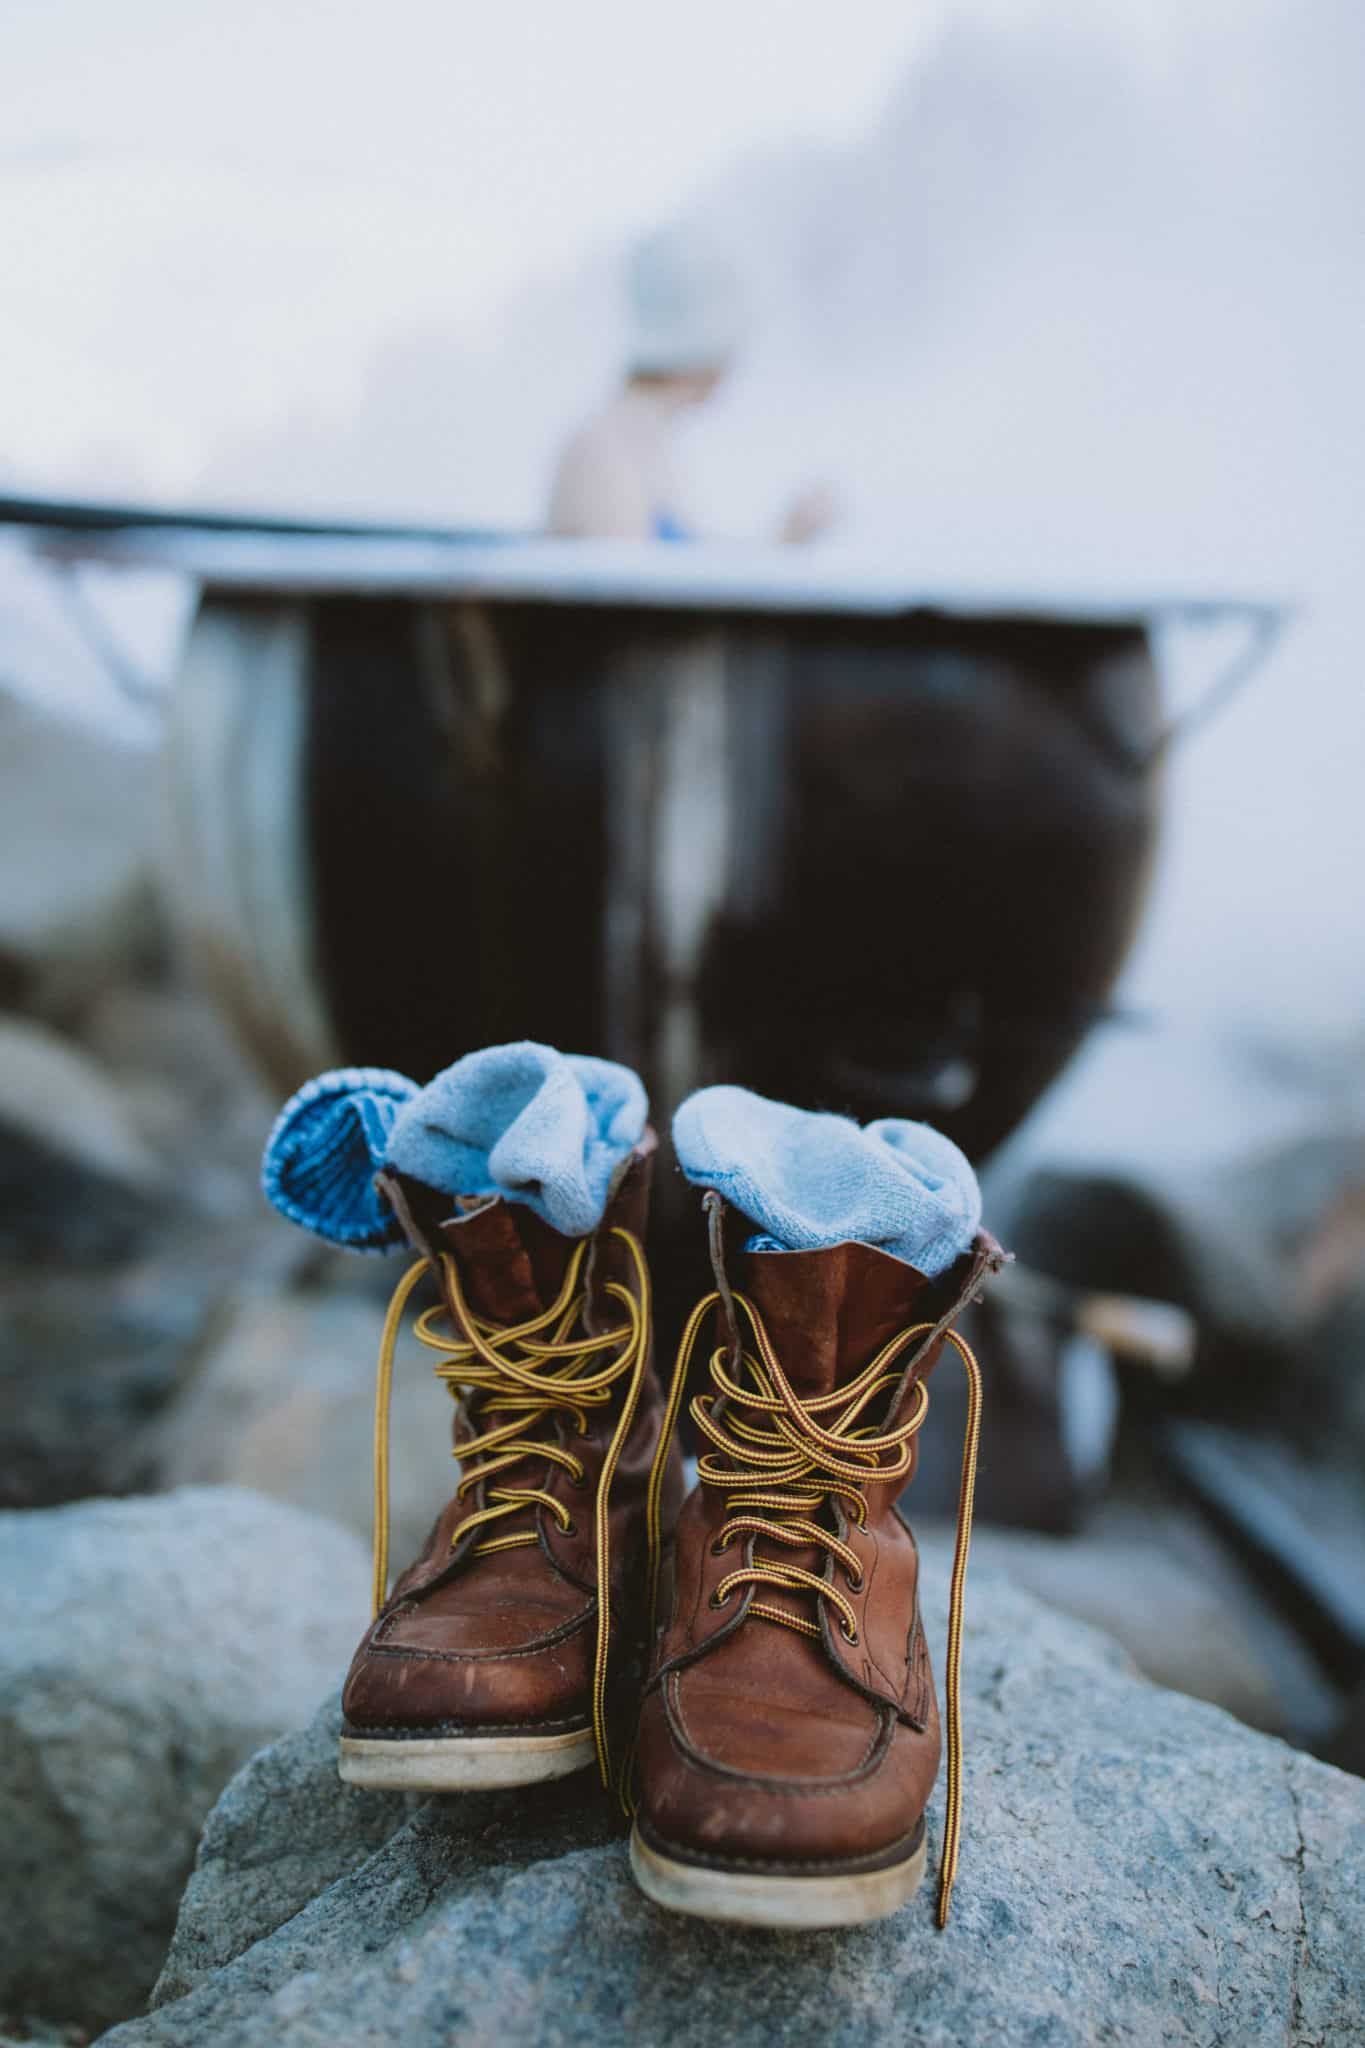 Red Wing Boots at Boat Box Hot Springs, Stanley, Idaho - The Mandagies